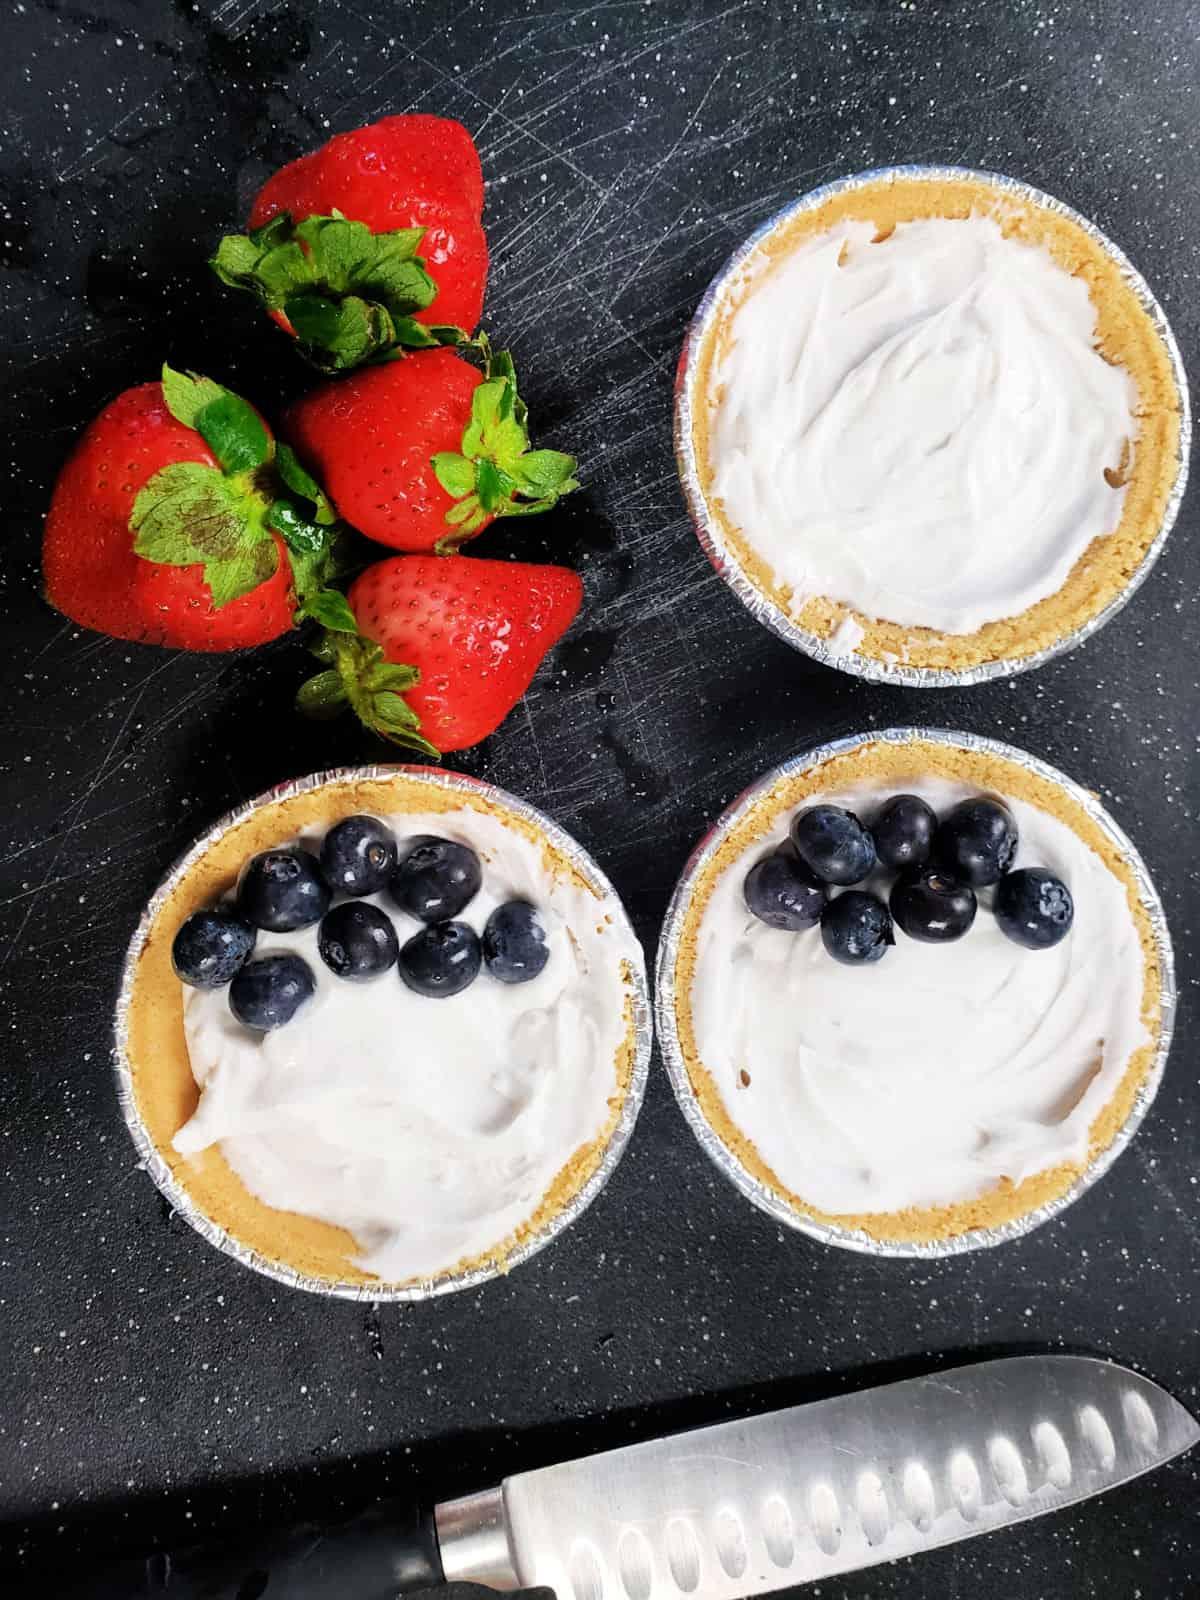 strawberries on a cutting board and coconut cream pies with blueberries